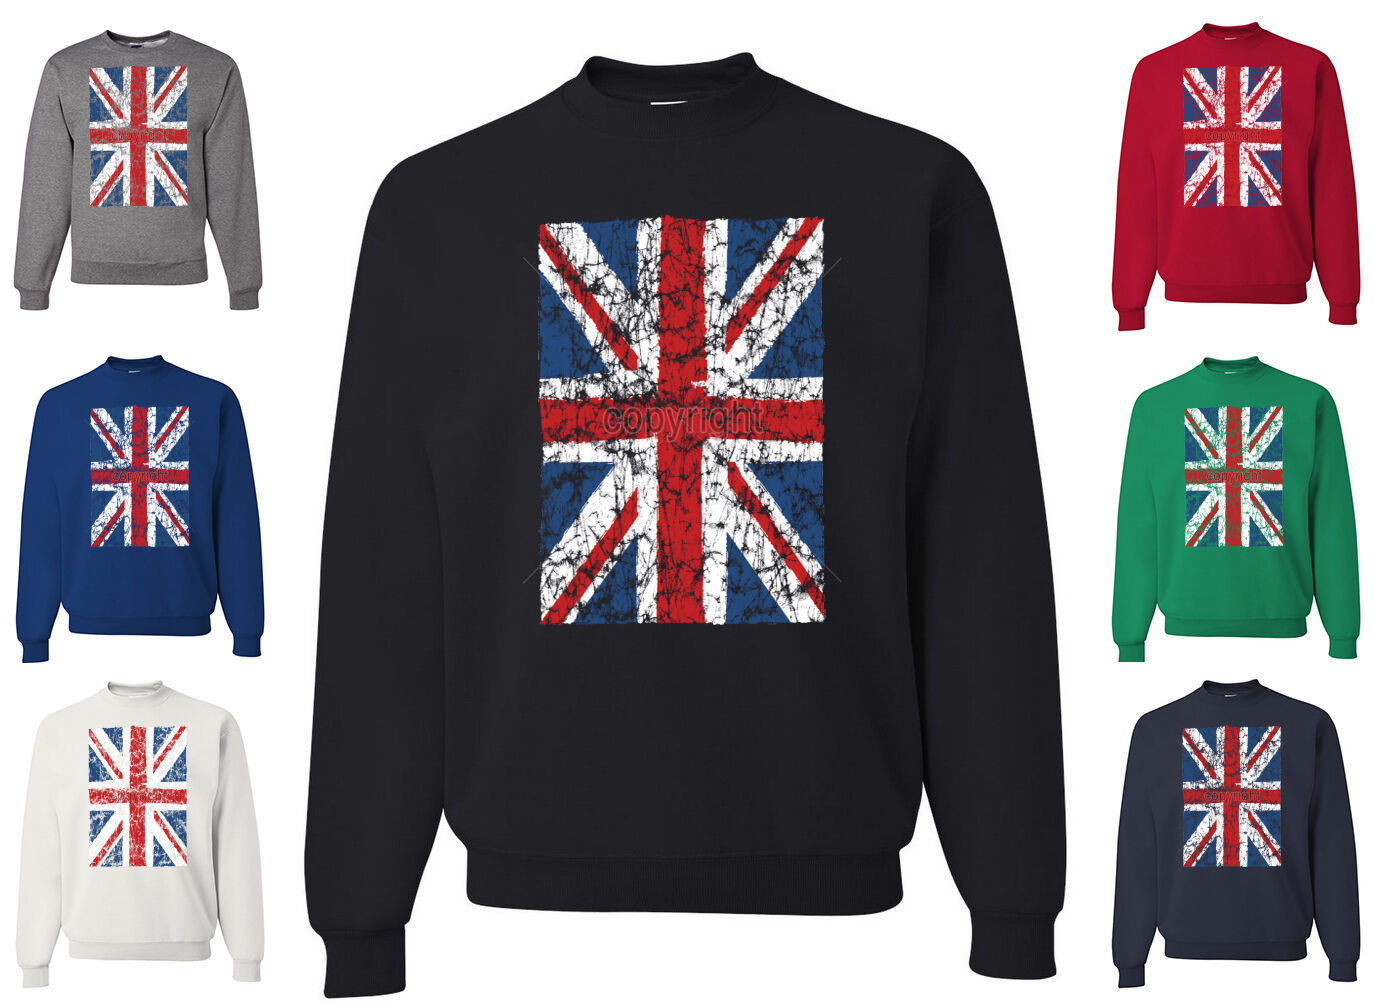 Primary image for Union Jack Crew Neck Sweatshirt UK United Kingdom Distressed British Flag Brexit